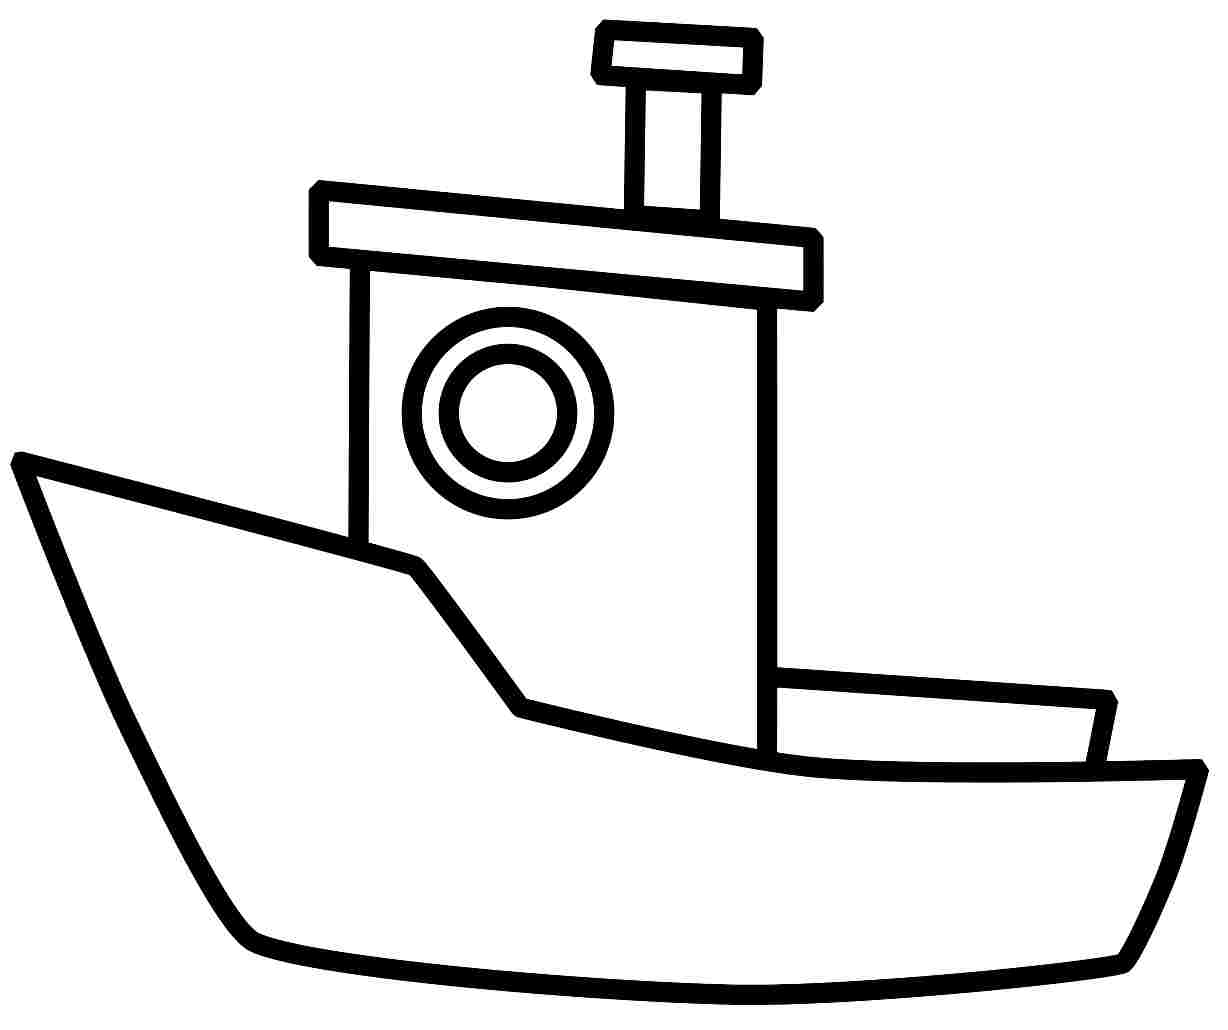 27 Images Of Shape Boat Coloring Sheet Template | Bfegy - Free Printable Sailboat Template